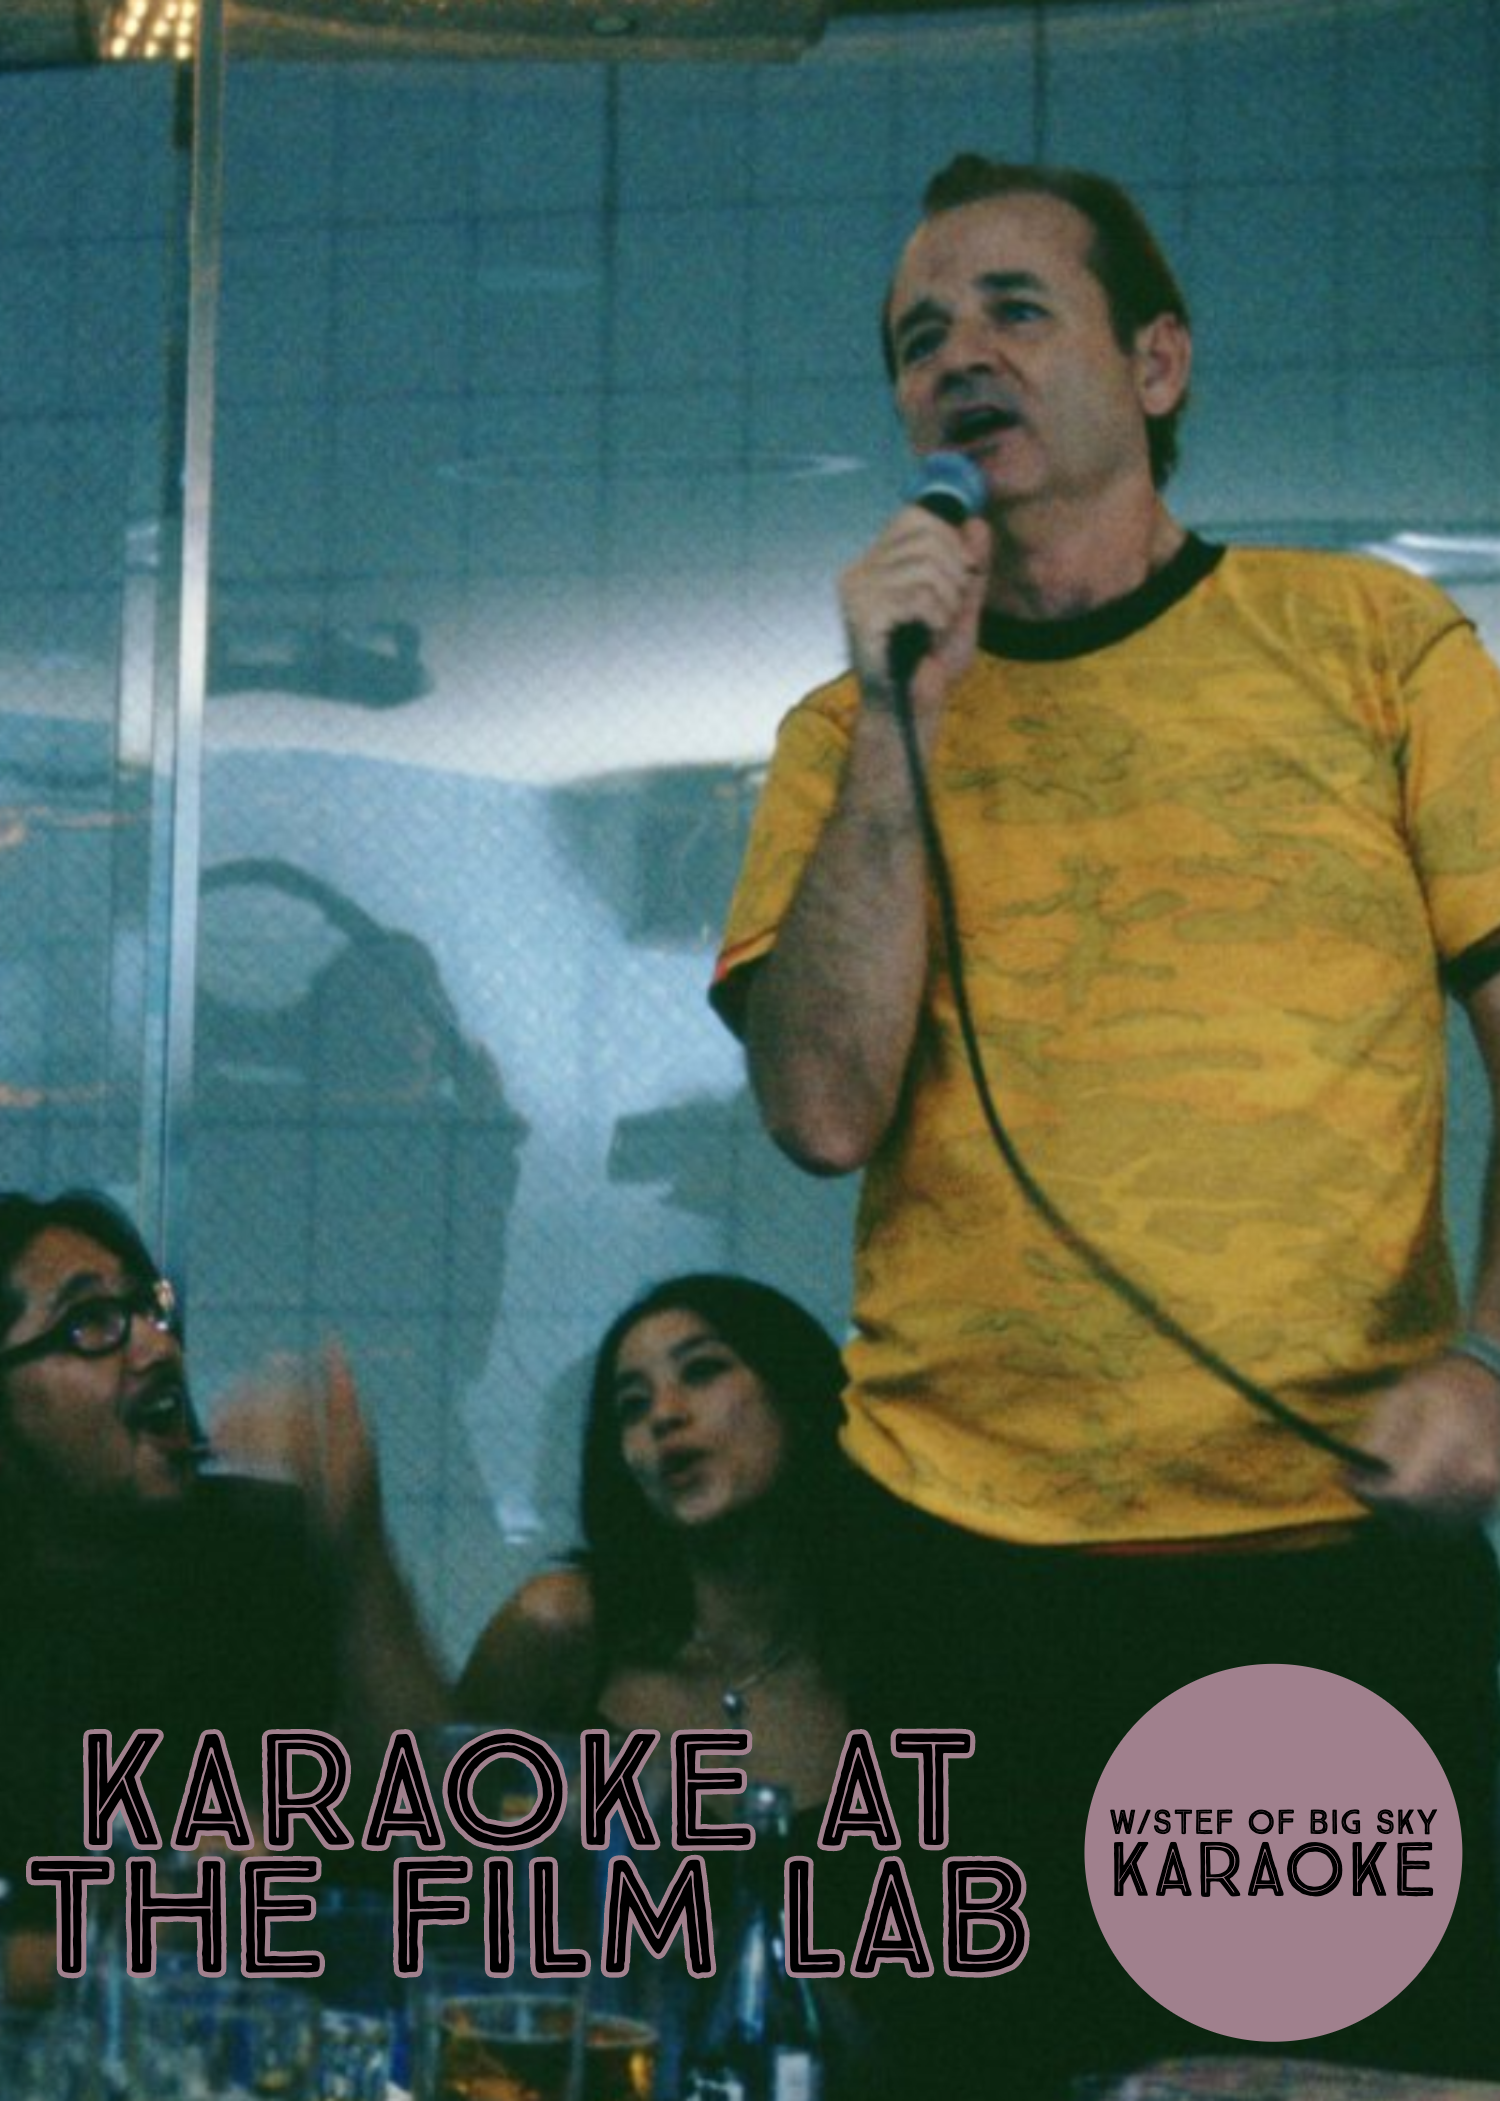 Poster for Karaoke at The Film Lab